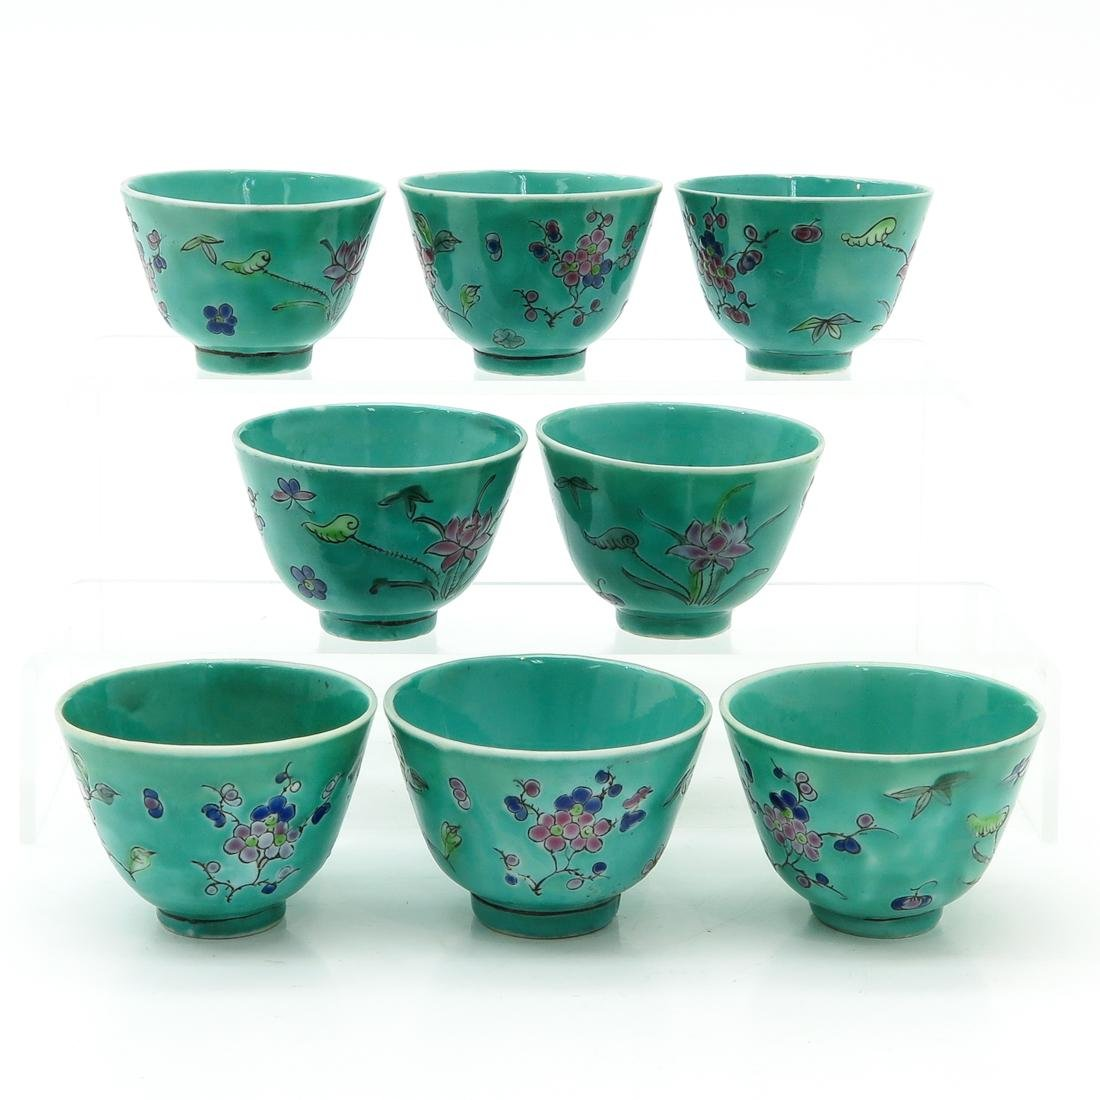 Lot of 8 Cups - 3